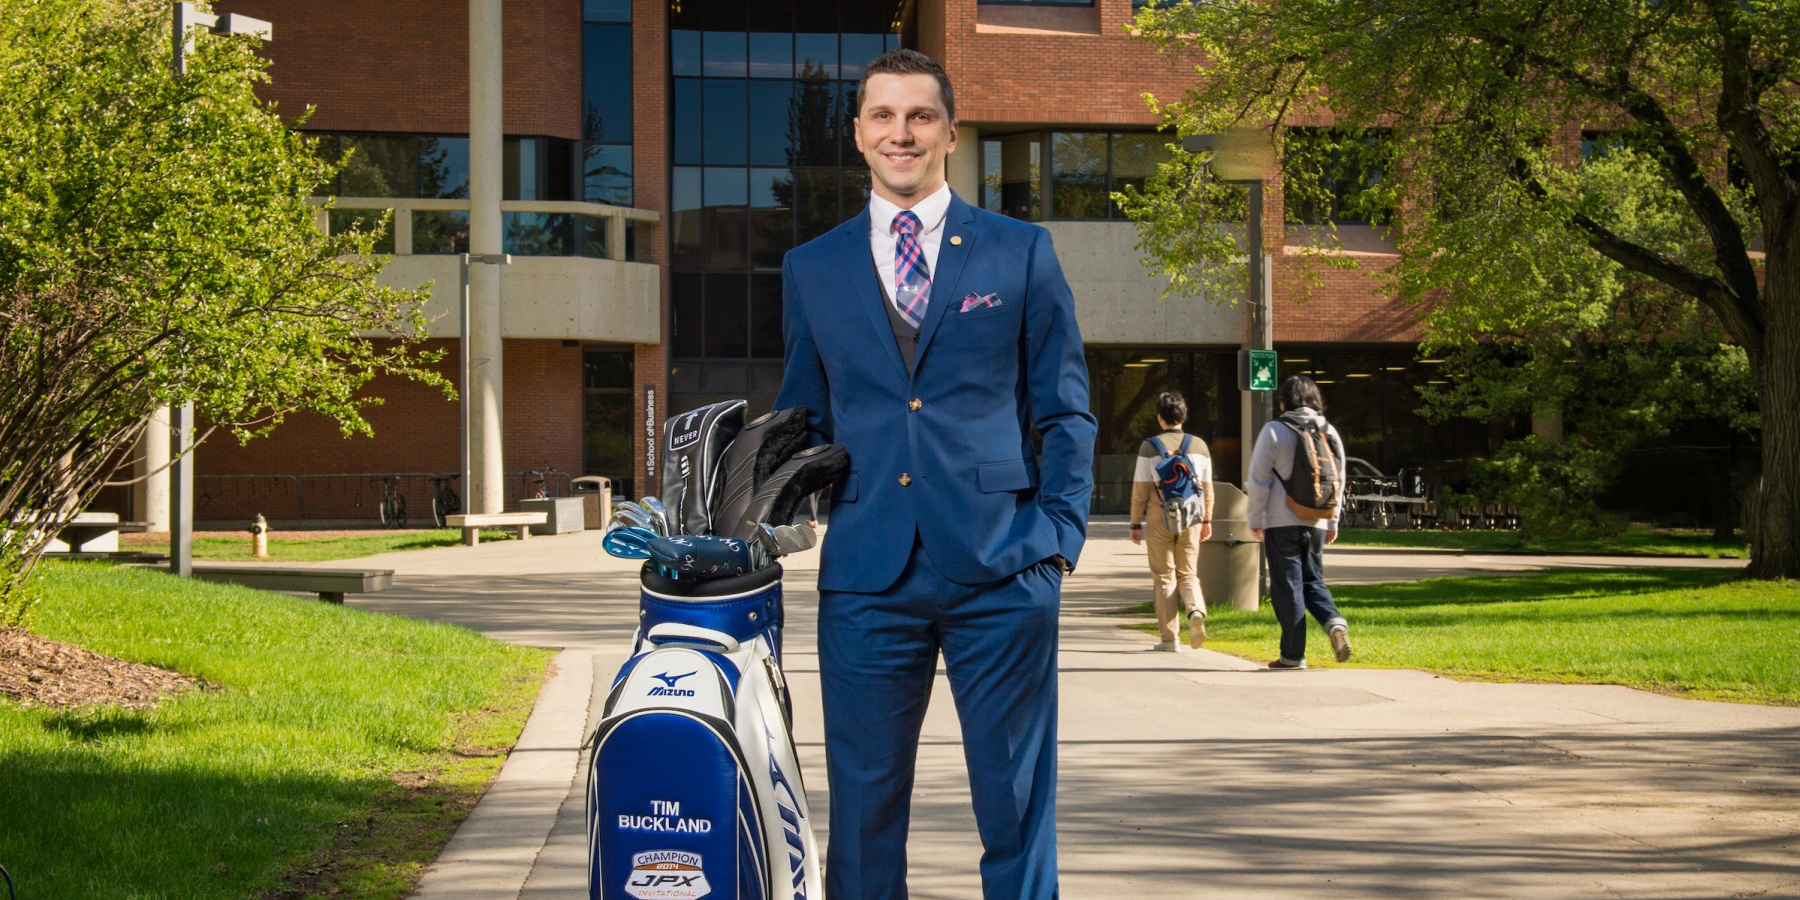 After three bouts of cancer, MBA graduate Tim Buckland has found solace on the golf course and helping others with their cancer struggles. (Photo by Richard Siemens)